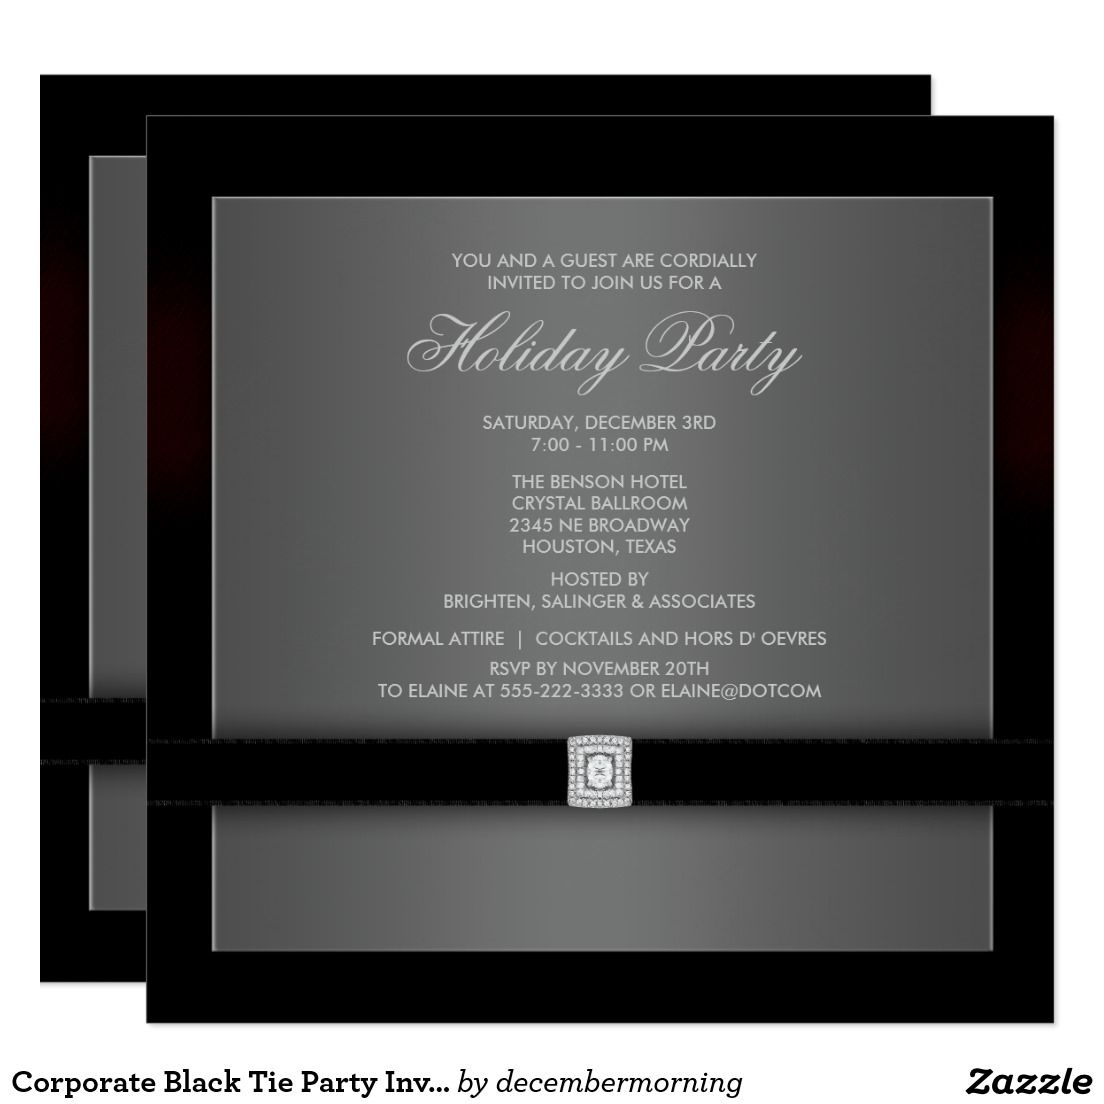 Corporate Black Tie Party Invitation Template | Christmas Party ...